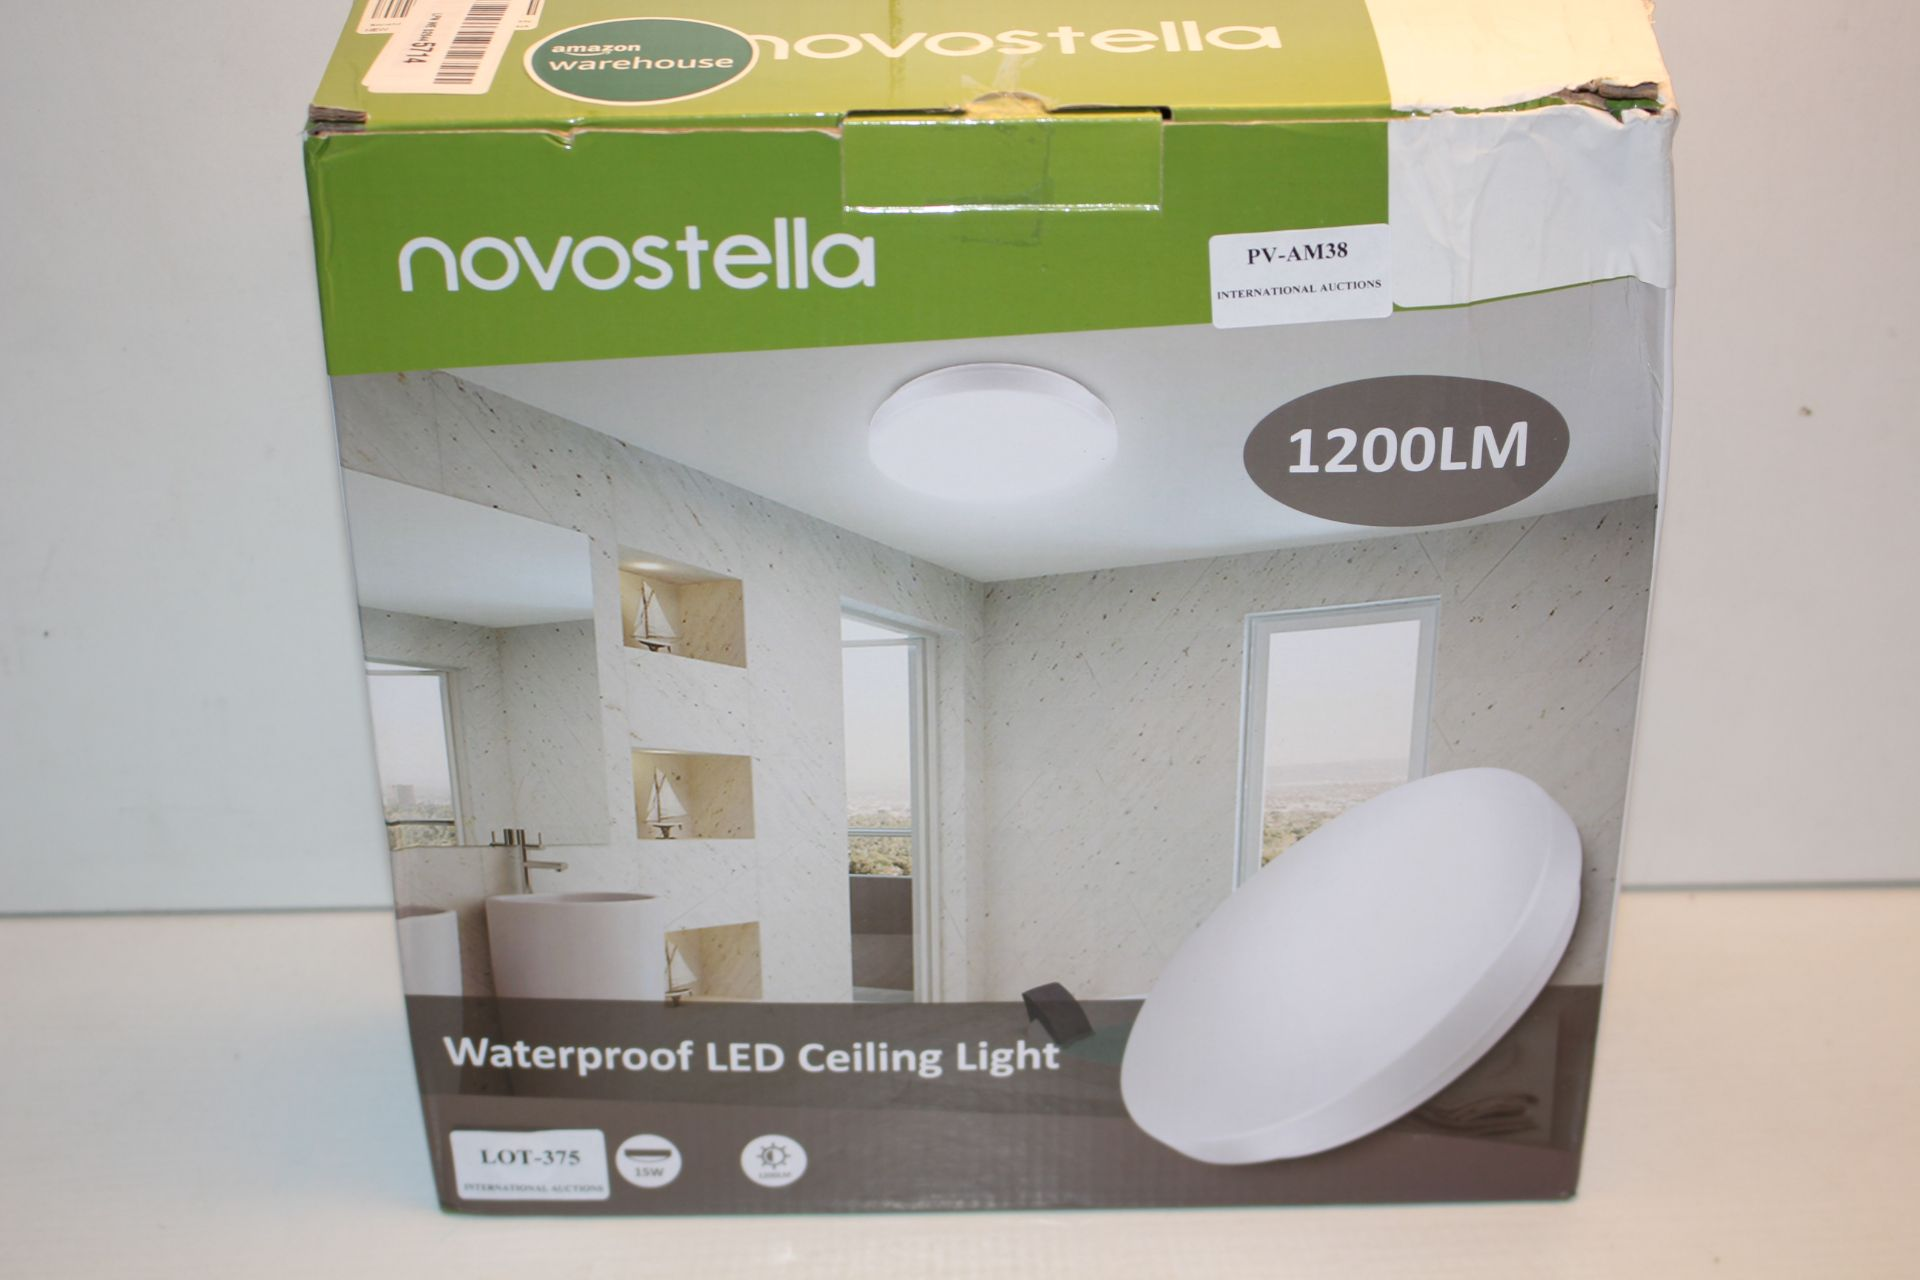 BOXED NOVOSTELLA 1200LM WATERPROOF LED CEILING LIGHT Condition ReportAppraisal Available on Request-